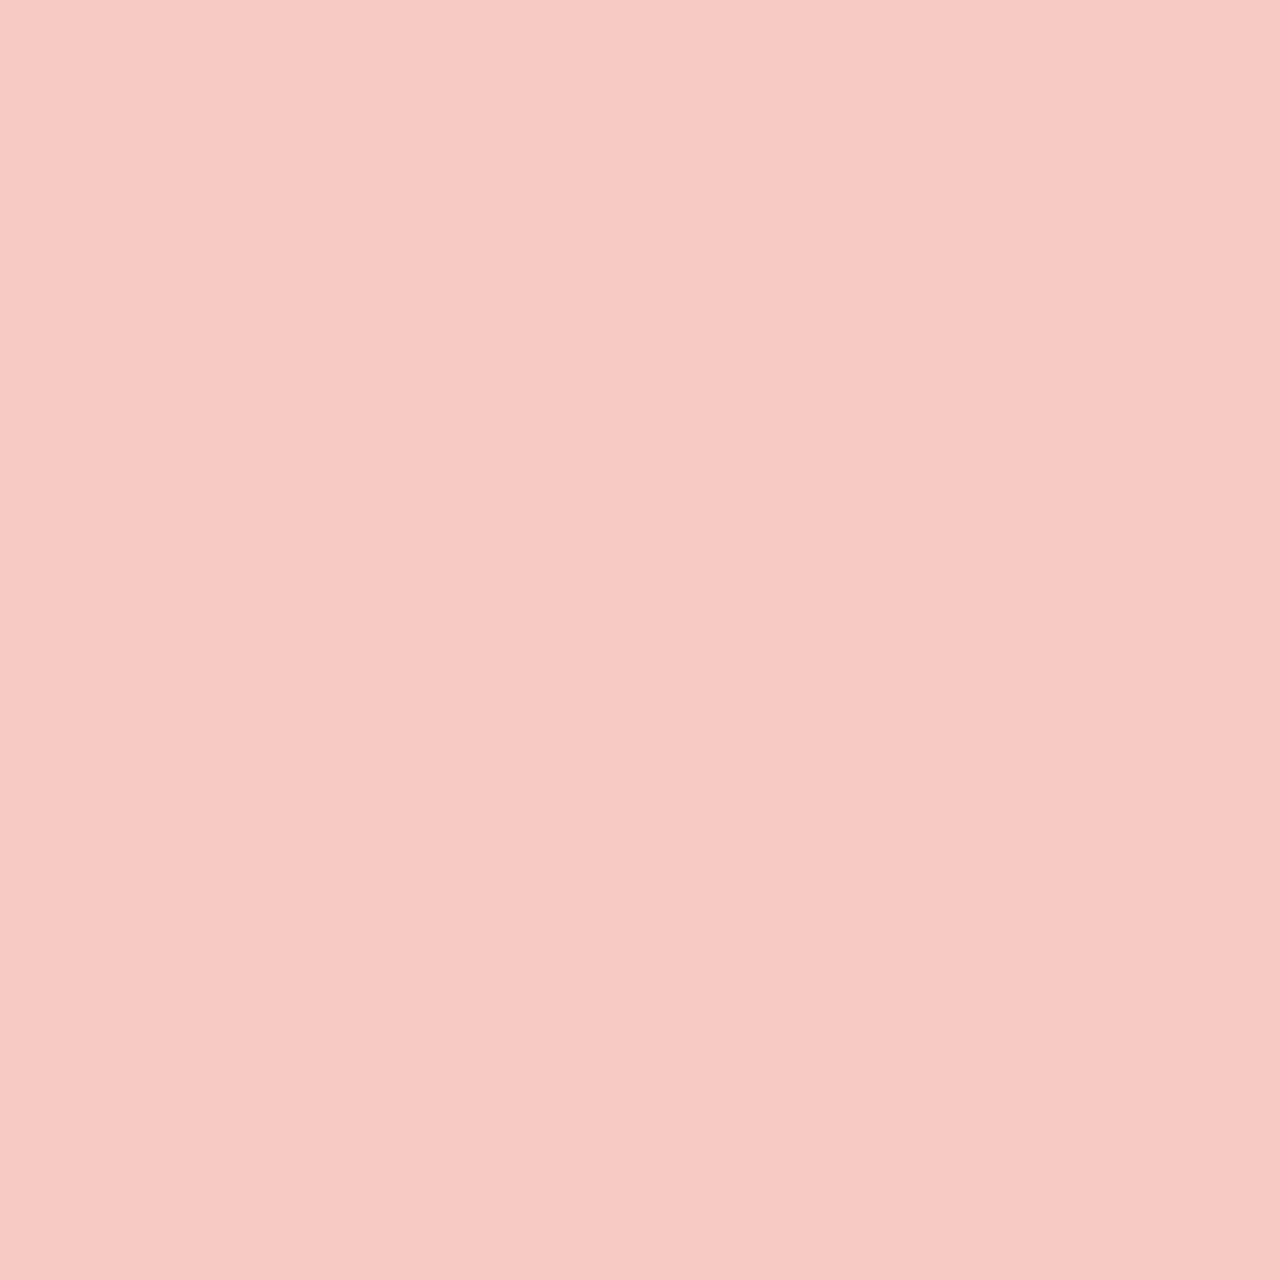 #0005 Rosco Gels Roscolux Rose Tint, 20x24""